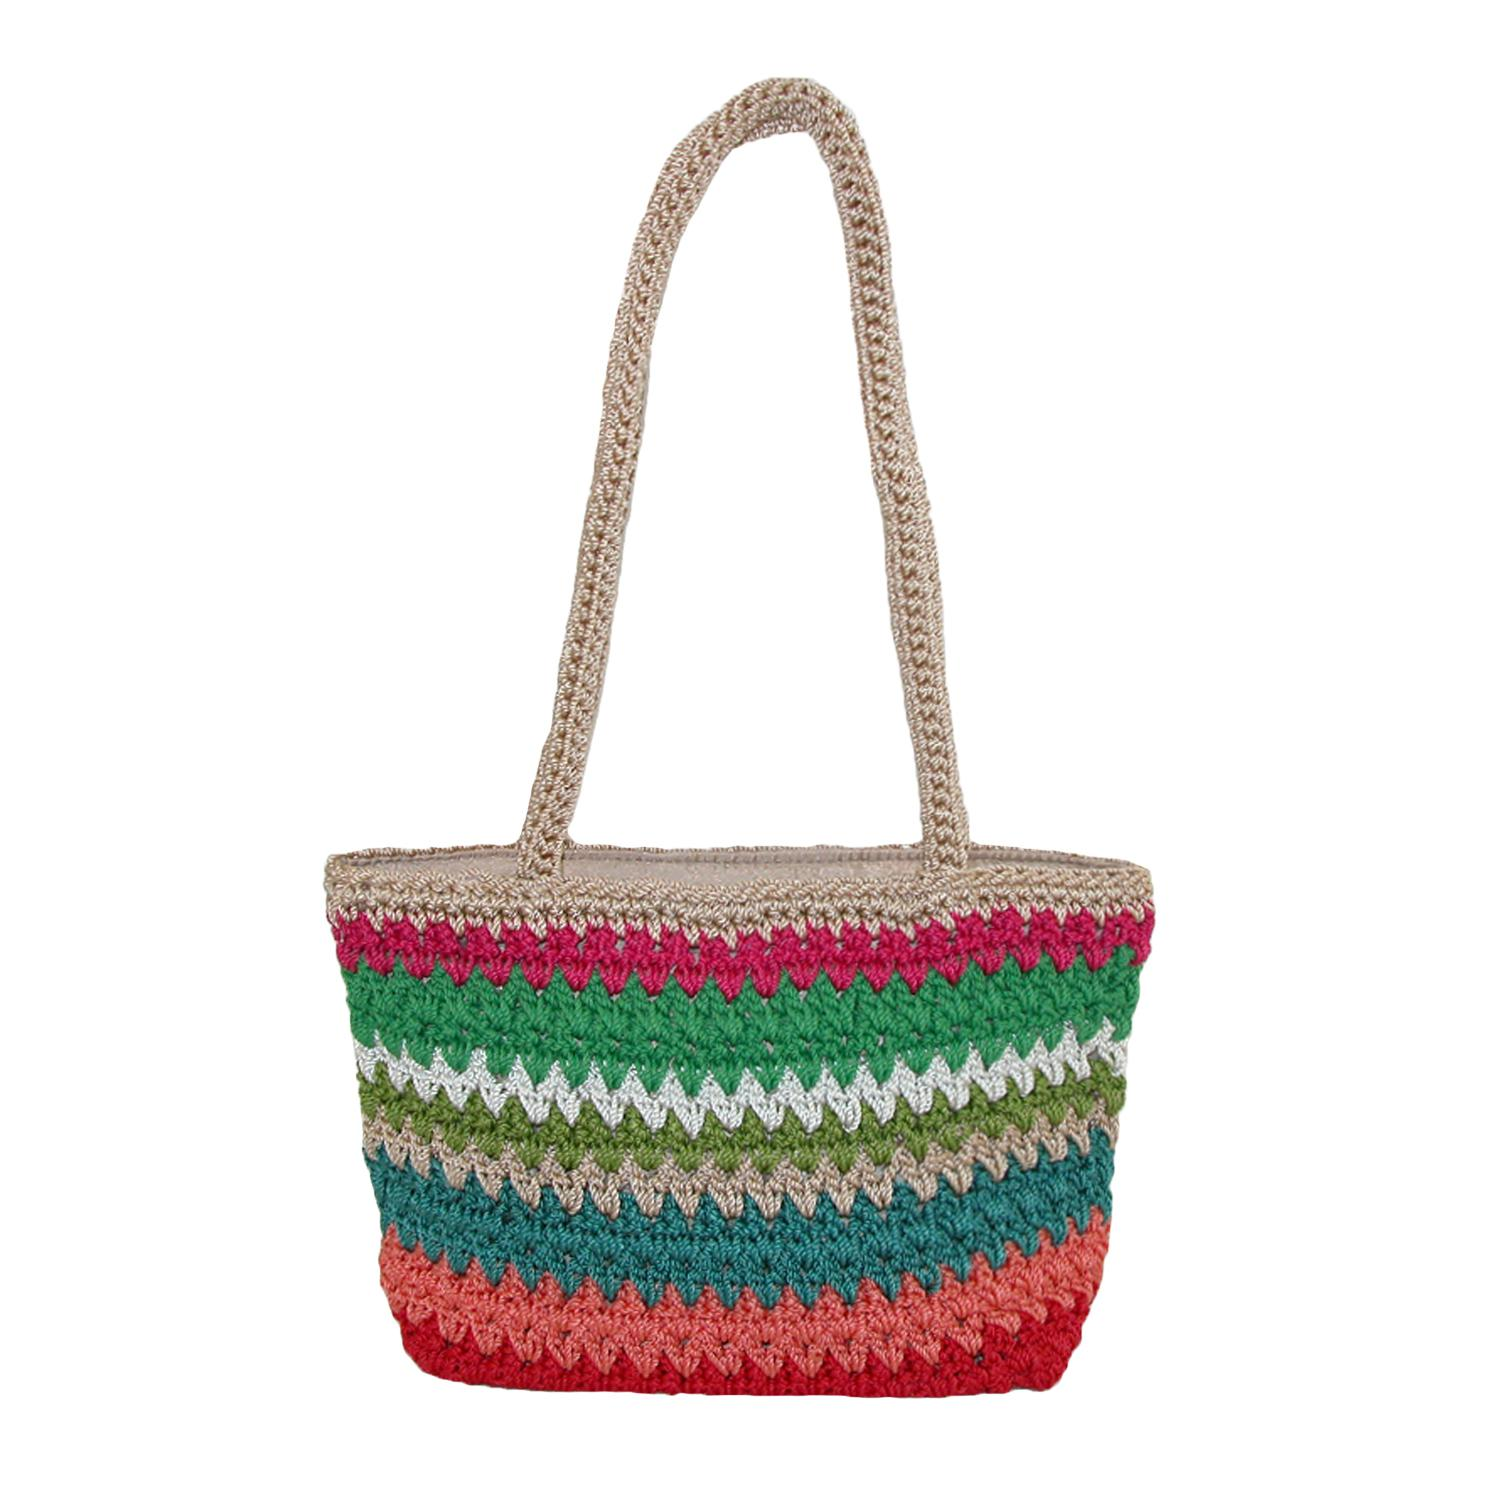 Dynamic Asia Women's Striped Crochet Handbag